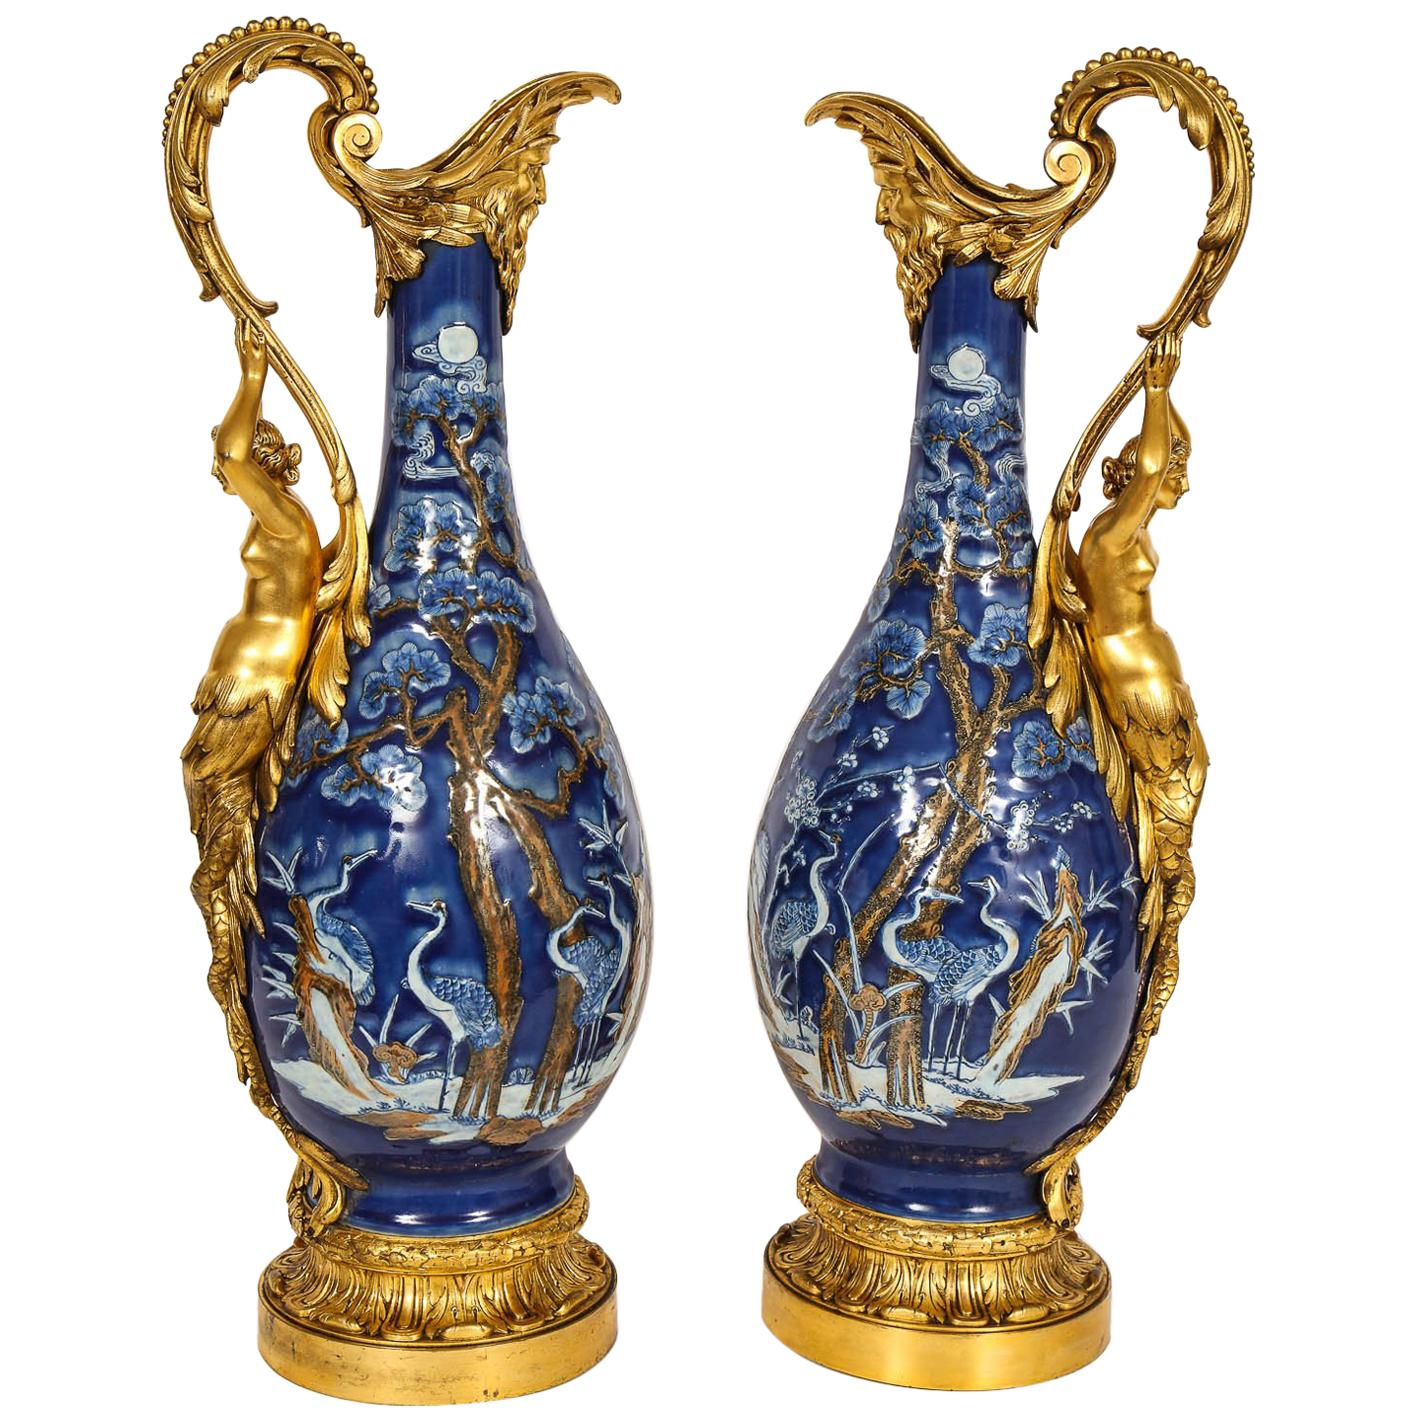 Pair of French Louis XVI Style Ormolu Mounted Chinese Export Porcelain Vases